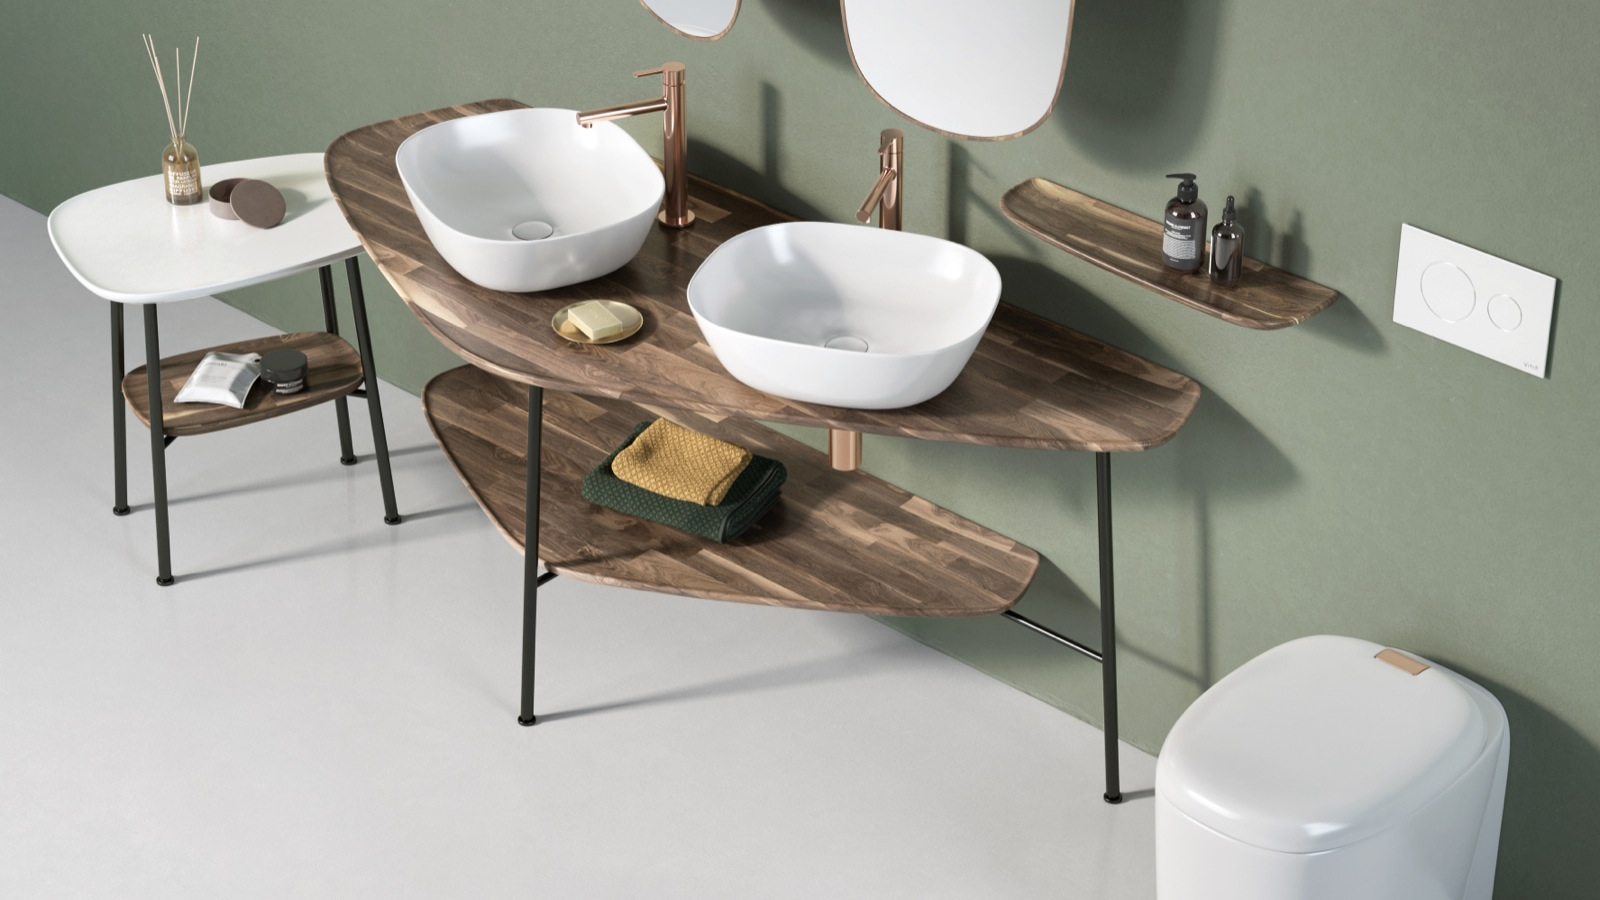 Bathroom trends for 2019 6